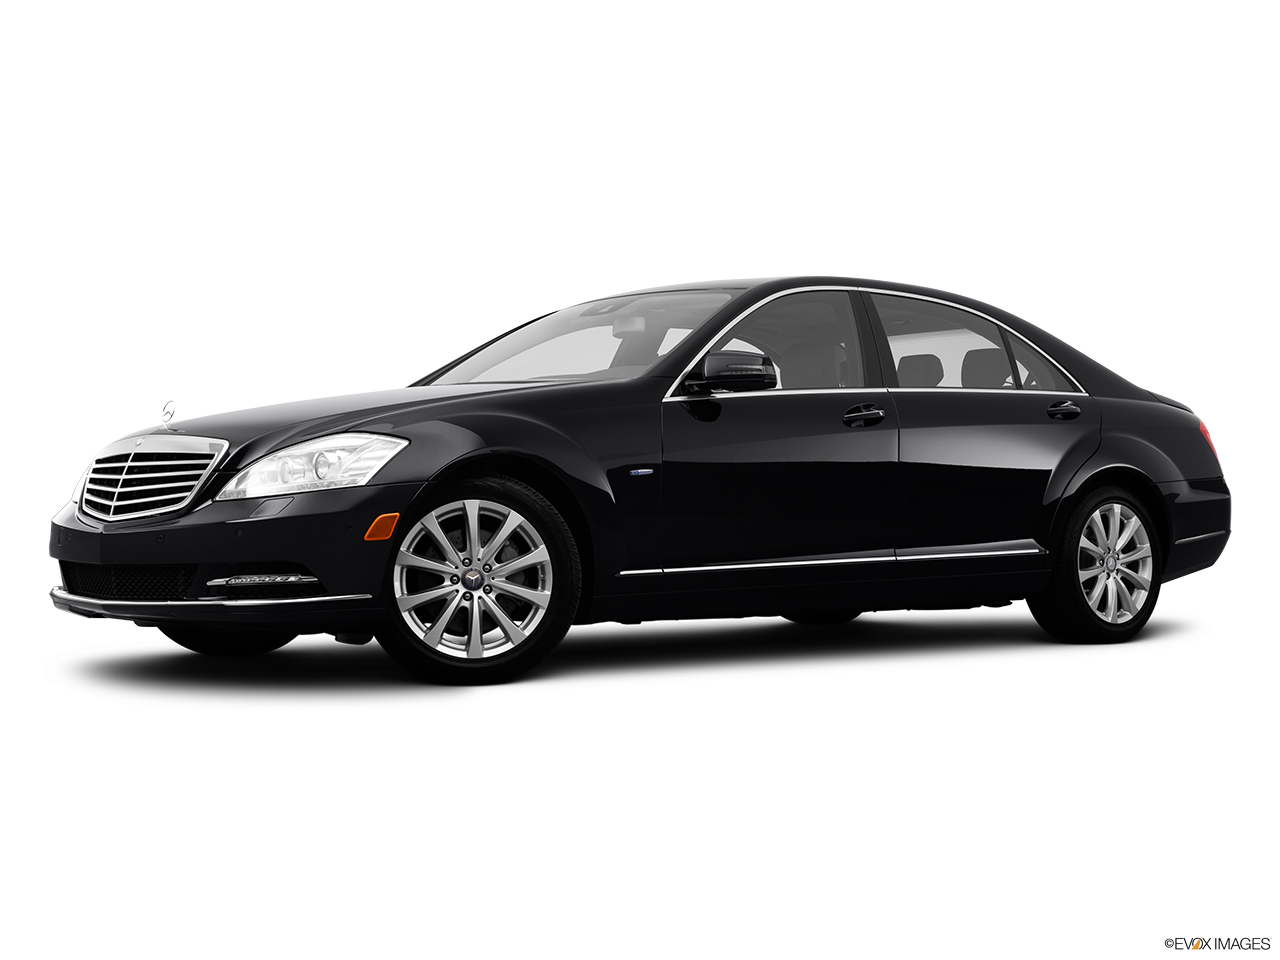 2012 Mercedes-Benz S-Class Hybrid S400 Low/wide front 5/8.